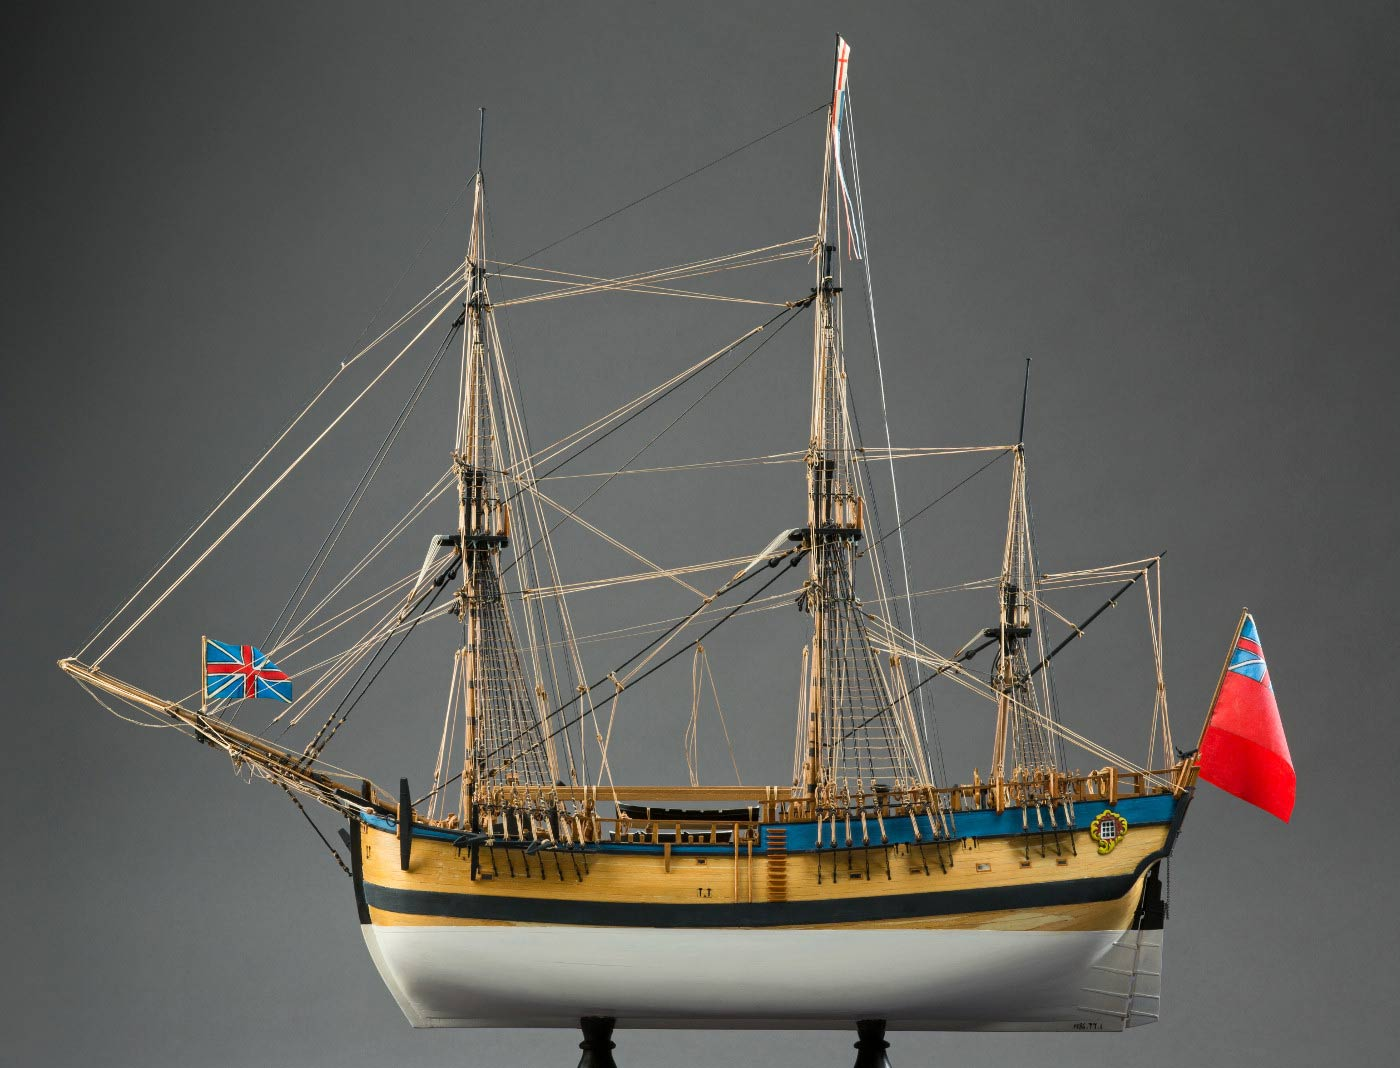 Side view of a model wooden sailing ship with a red flag at the rear. - click to view larger image